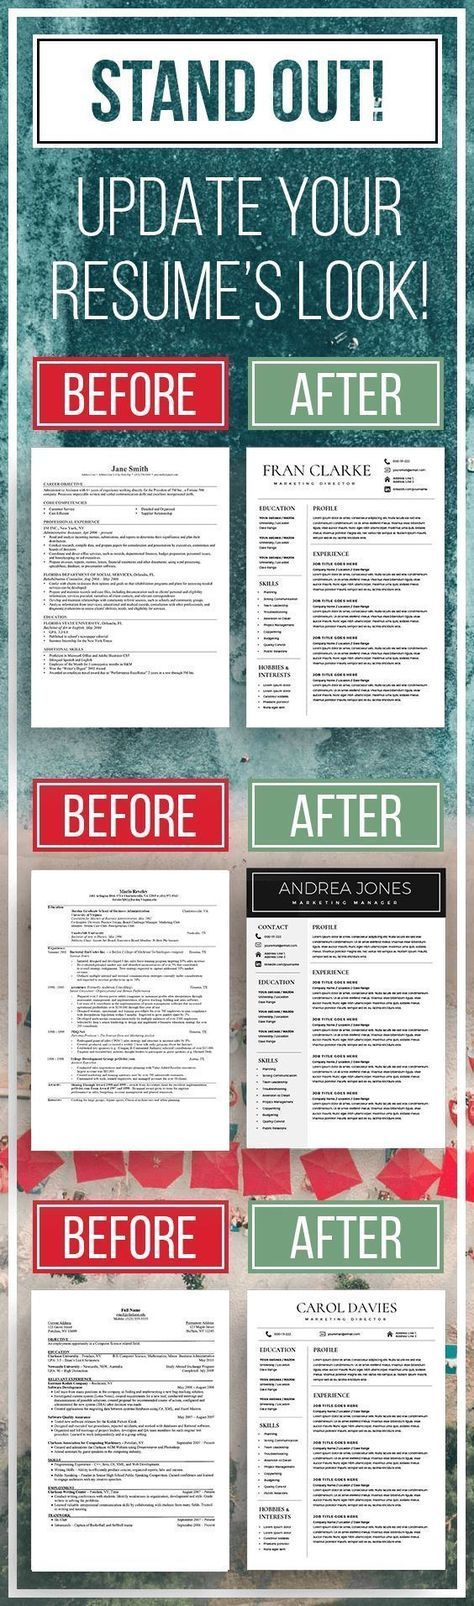 26 best jobs images on Pinterest Knowledge, Resume ideas and - check my resume